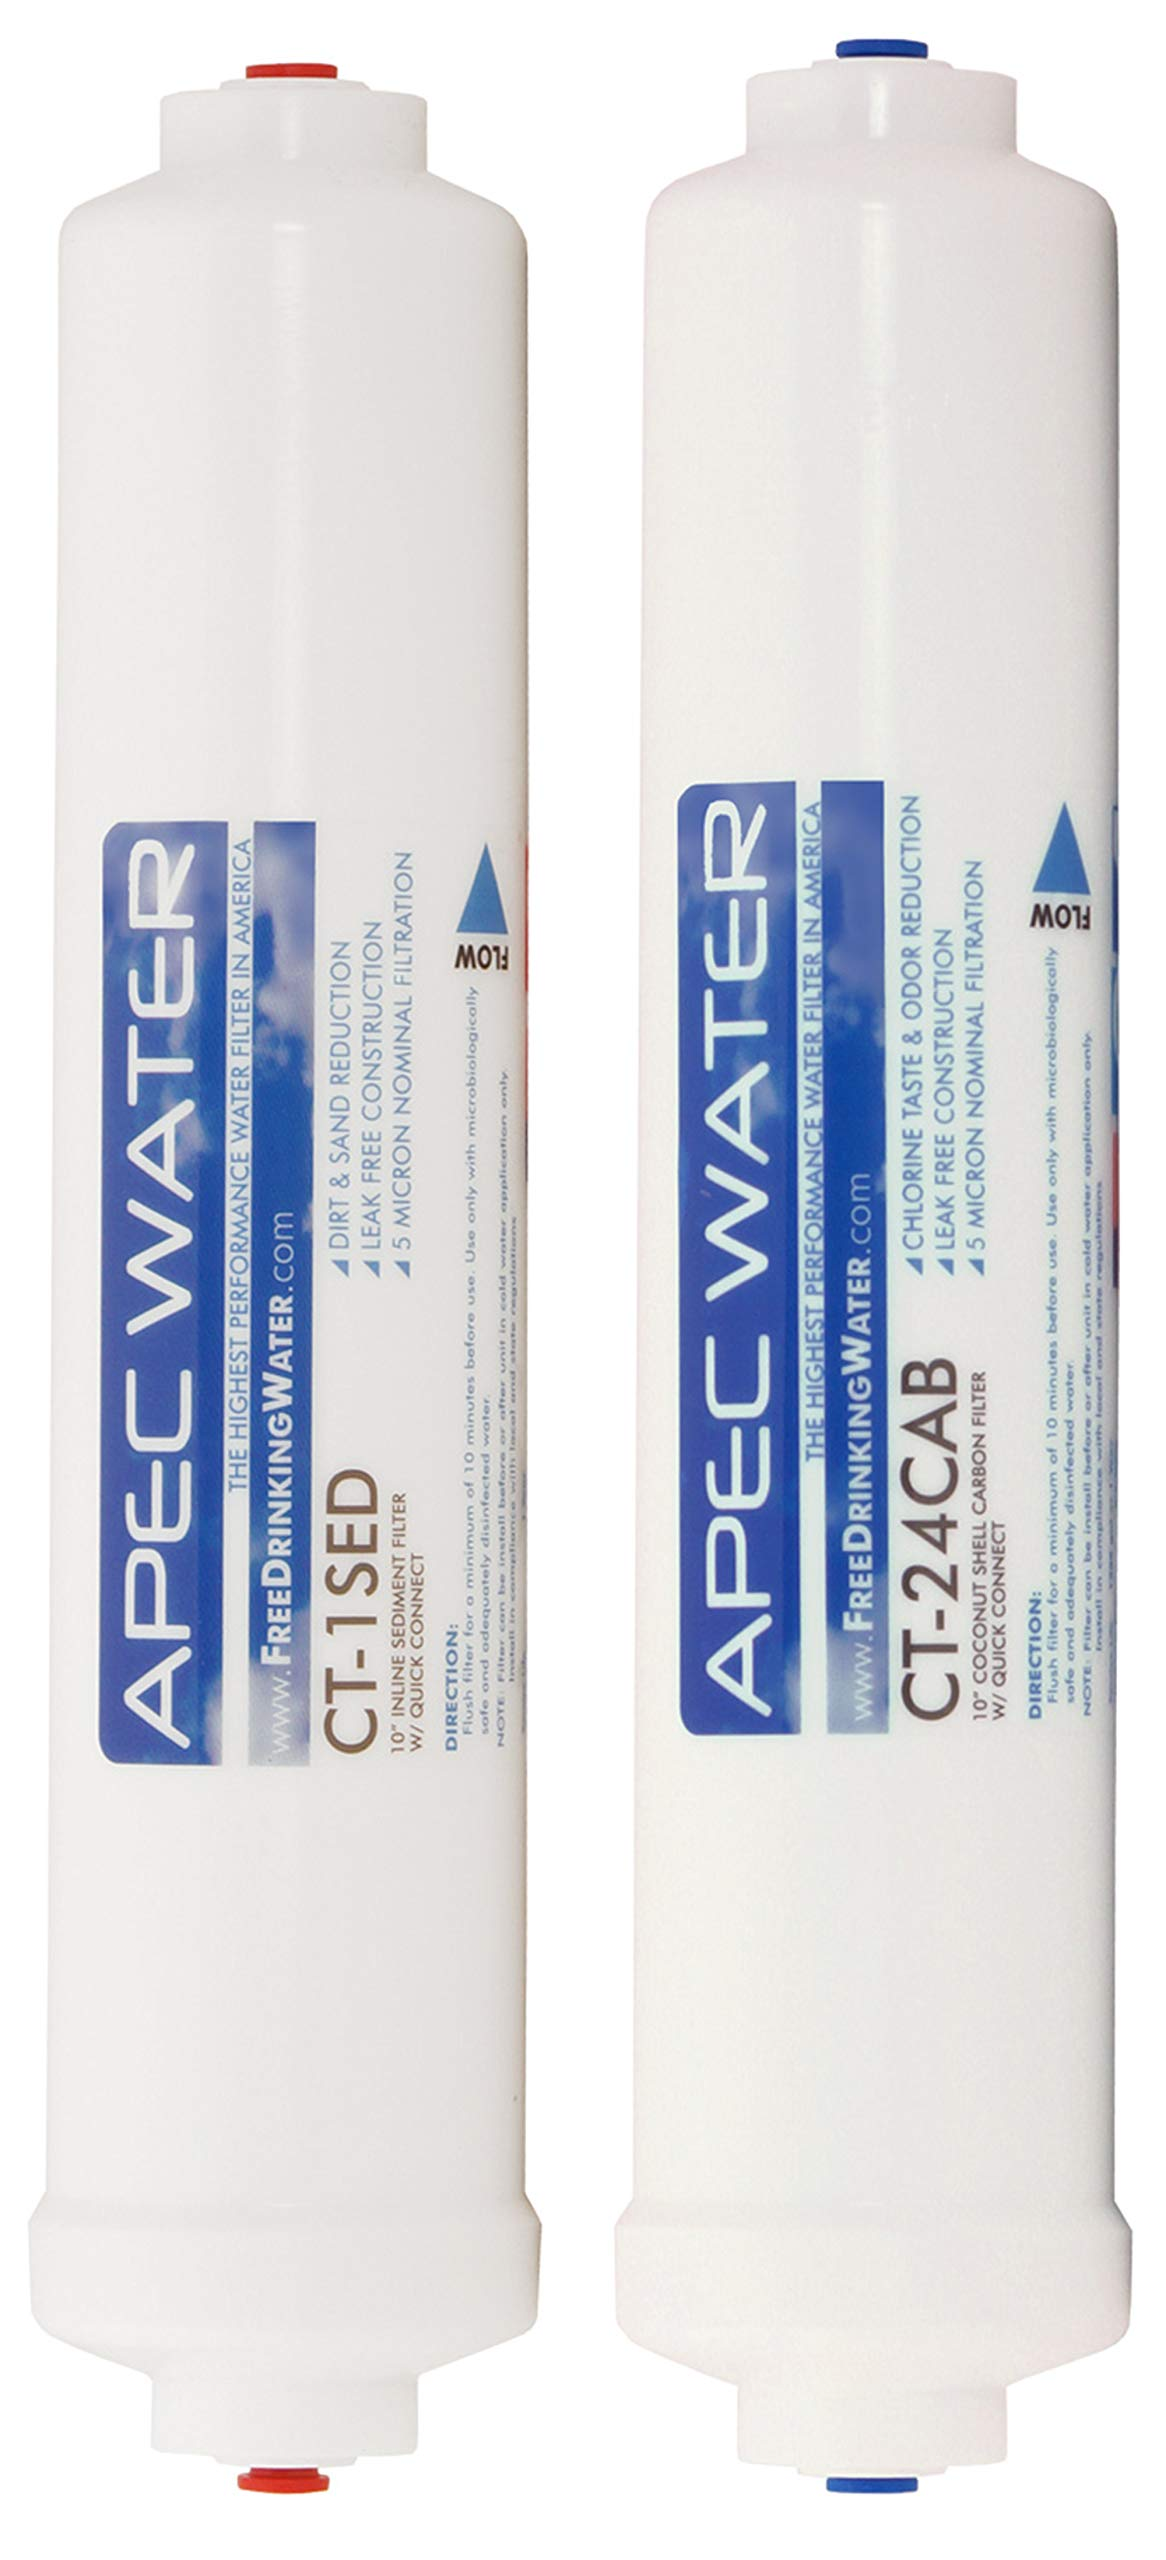 APEC Water Systems FILTER-SET-CTOP US Made Double Capacity Replacement Filter Set For Ultimate Series Countertop Reverse Osmosis Water Filter System Stage 1-2 by APEC Water Systems